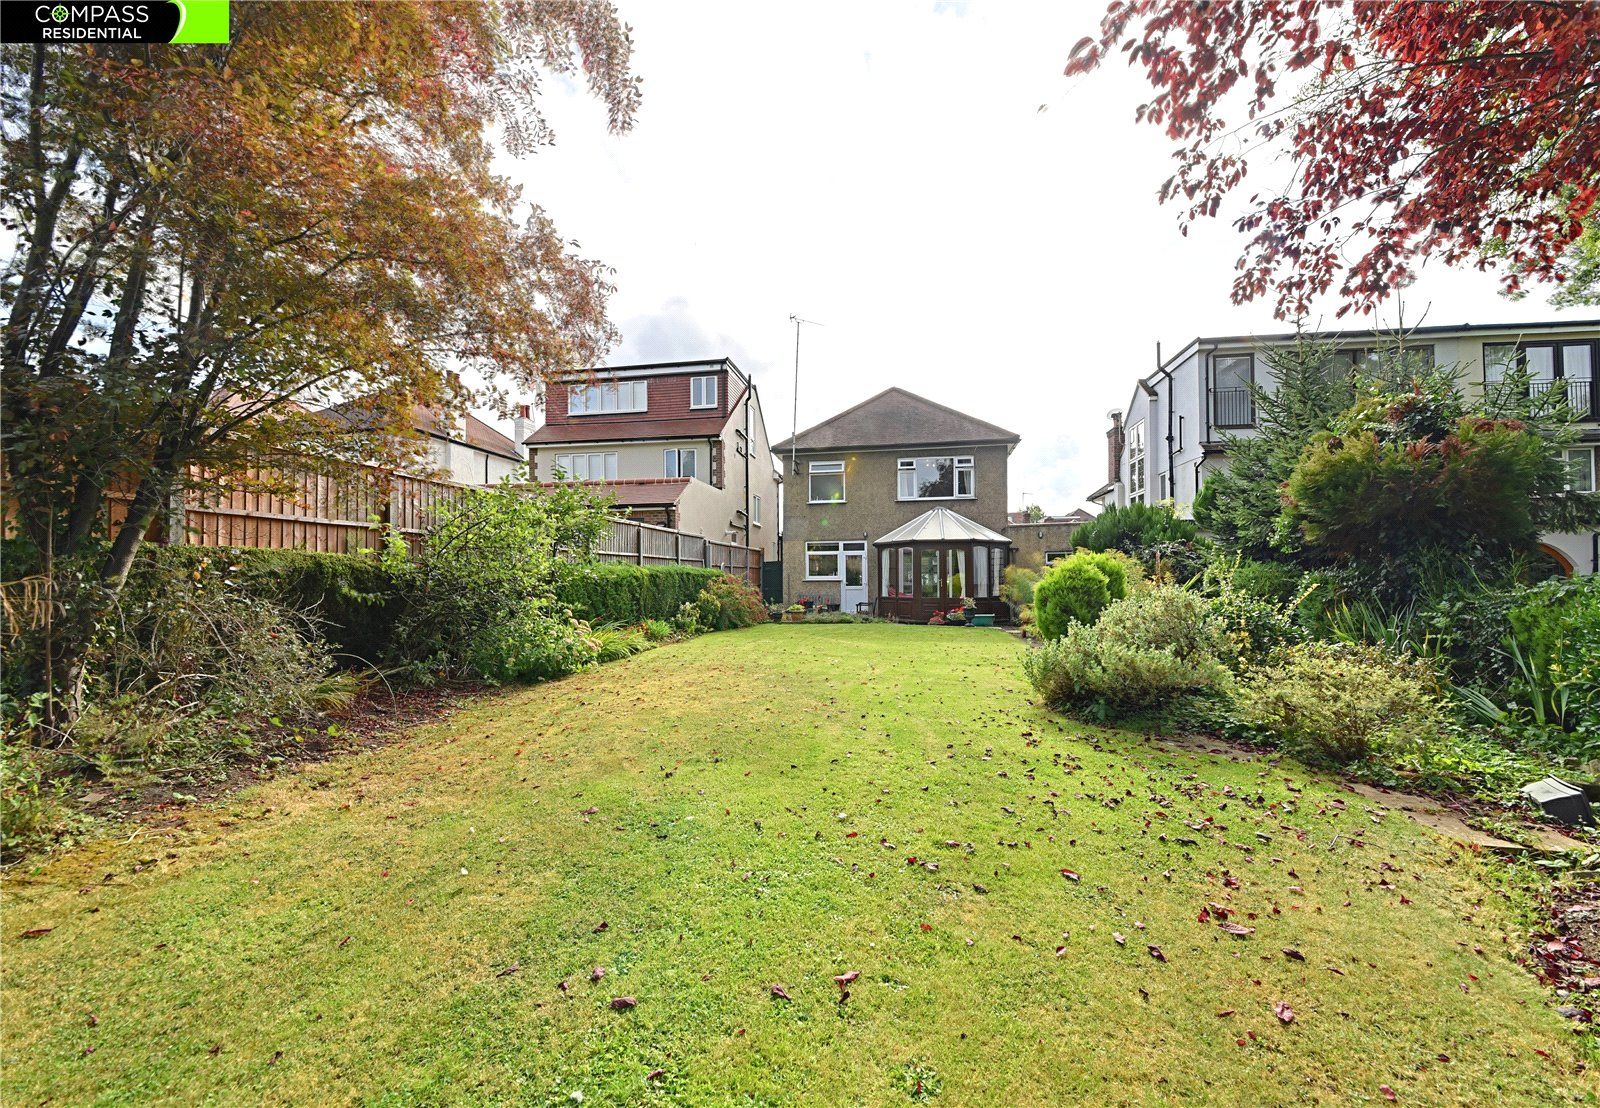 3 bed house for sale in Totteridge, N20 8HL  - Property Image 12